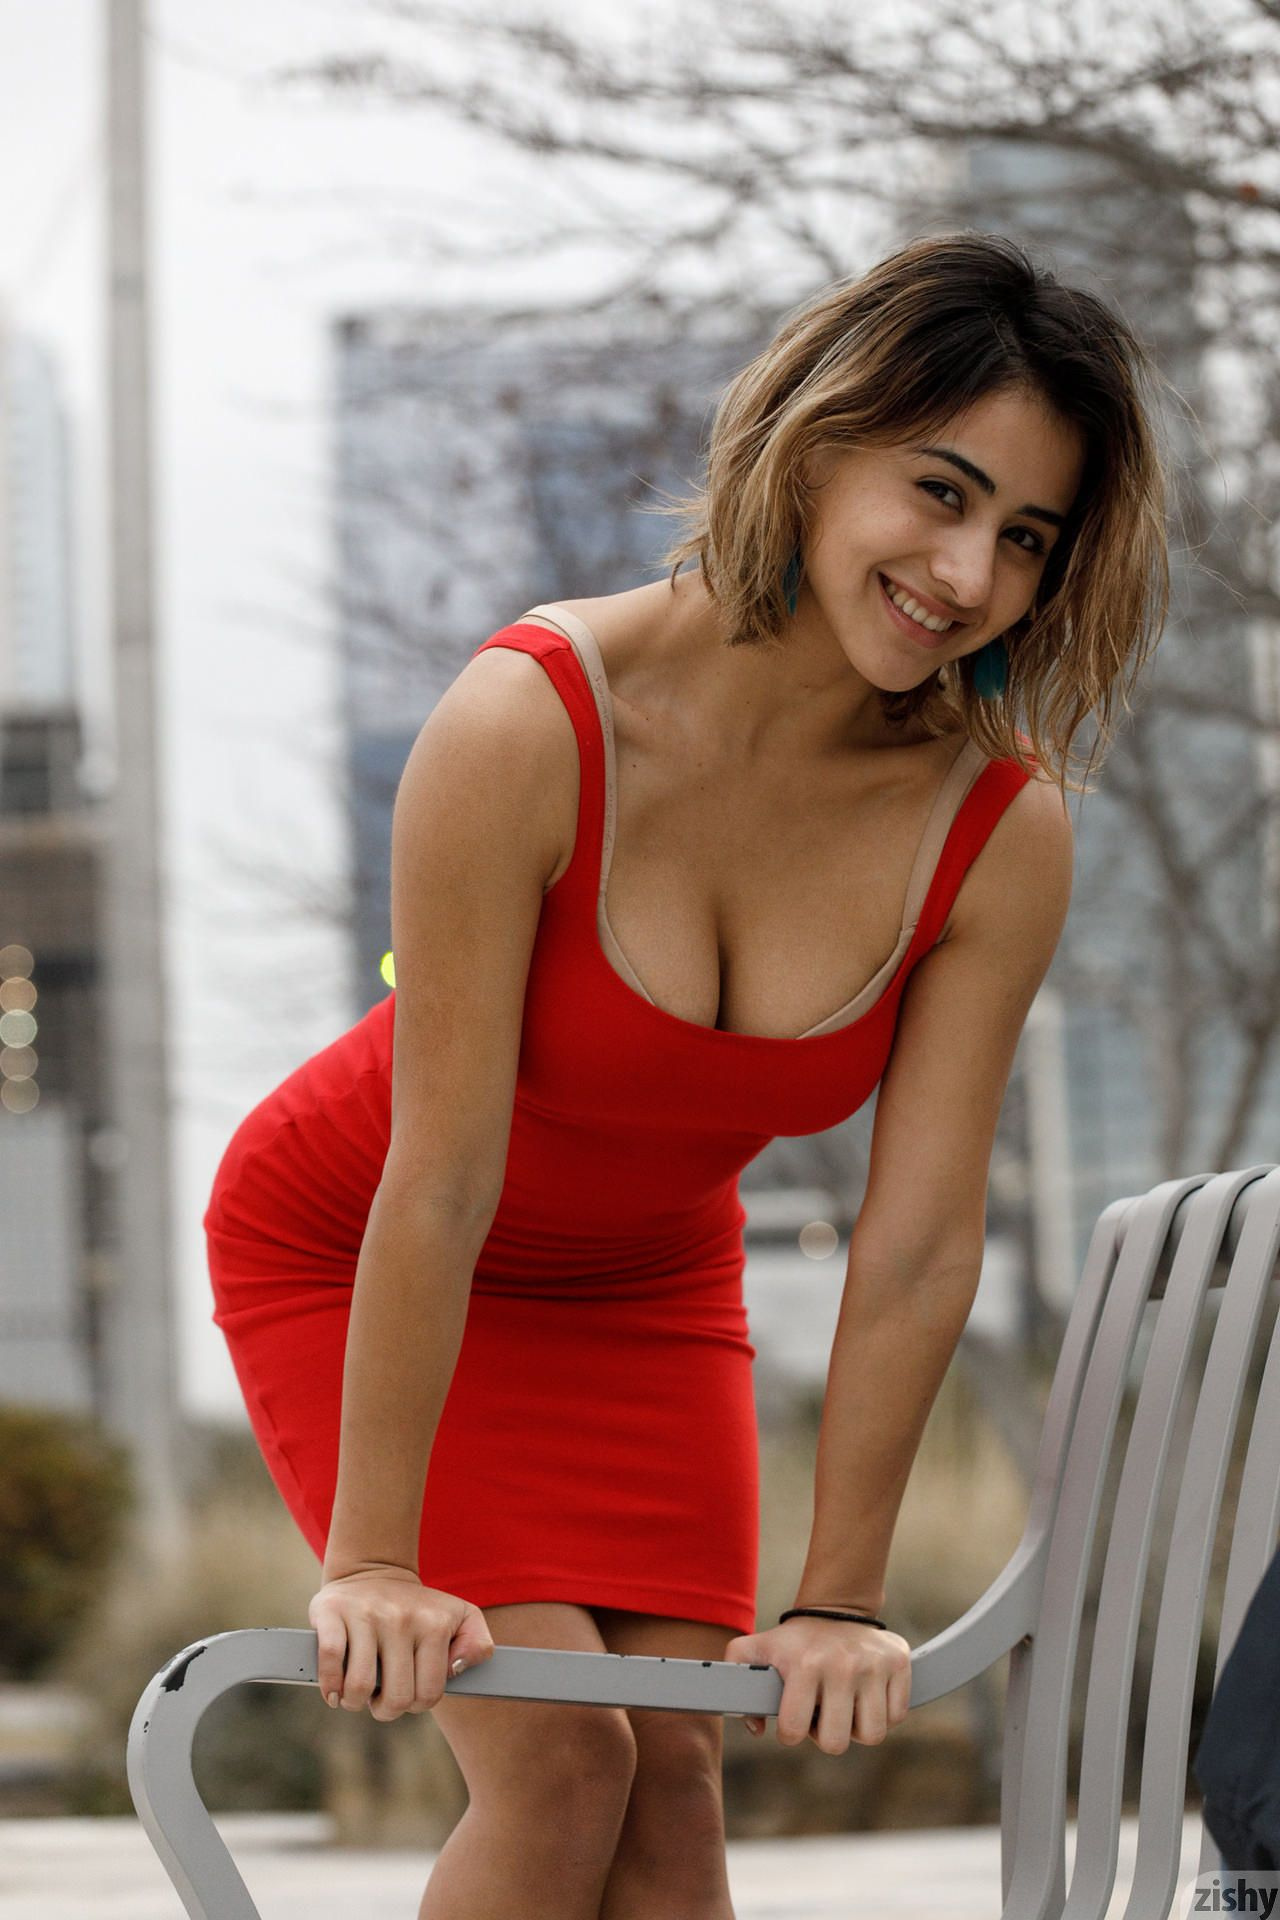 Pictures Catarina Correia naked (12 photos), Pussy, Paparazzi, Selfie, butt 2019